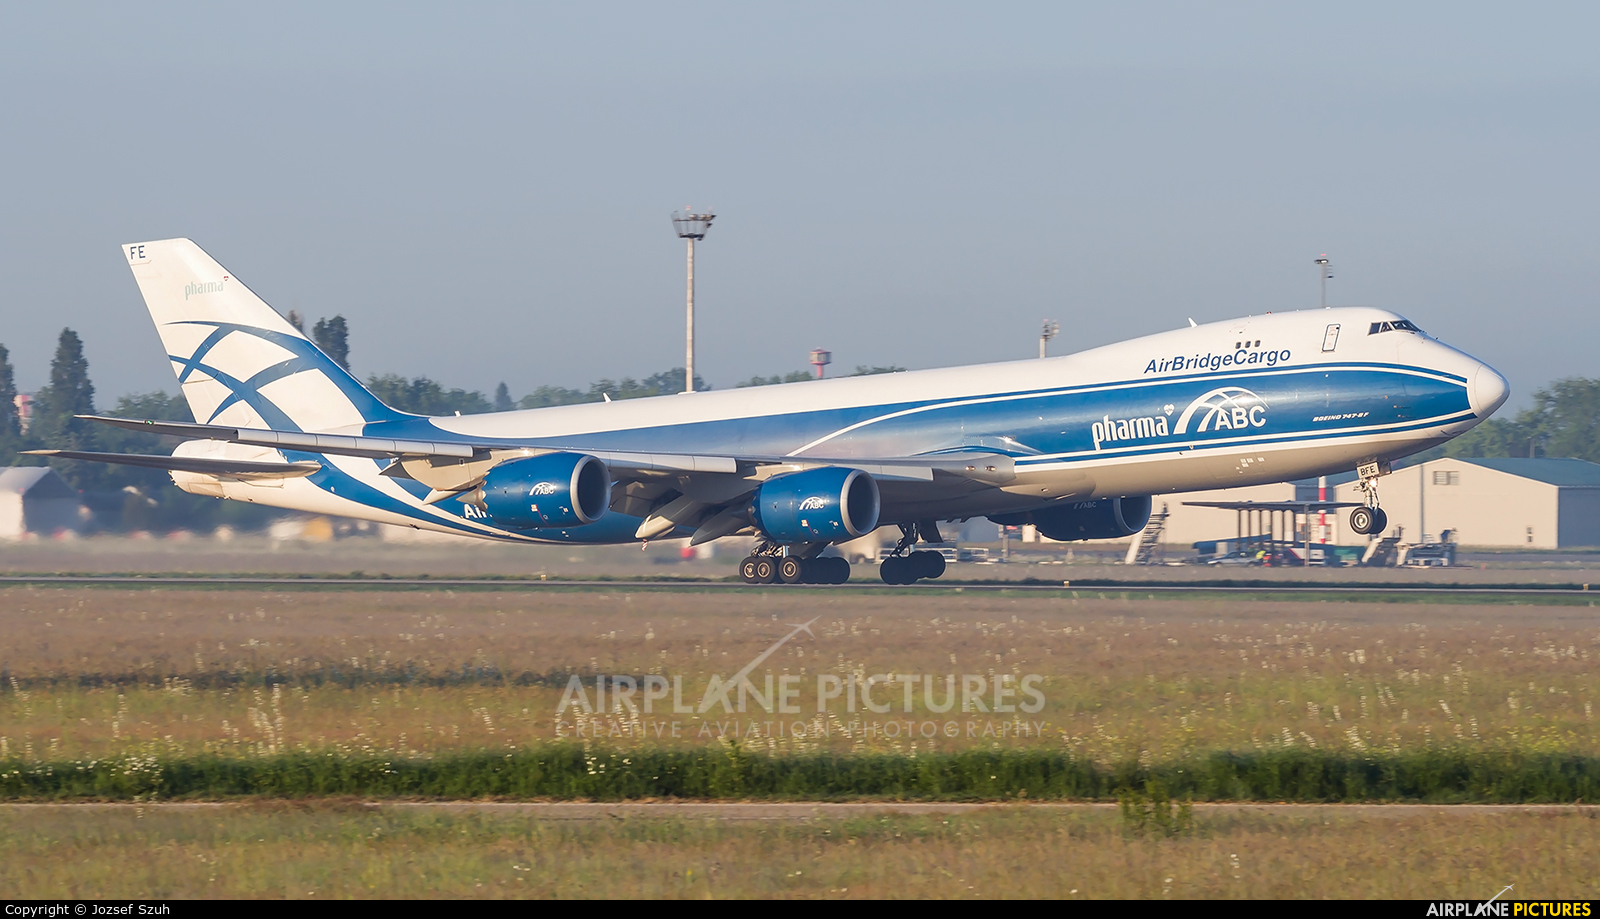 Air Bridge Cargo VQ-BFE aircraft at Budapest Ferenc Liszt International Airport